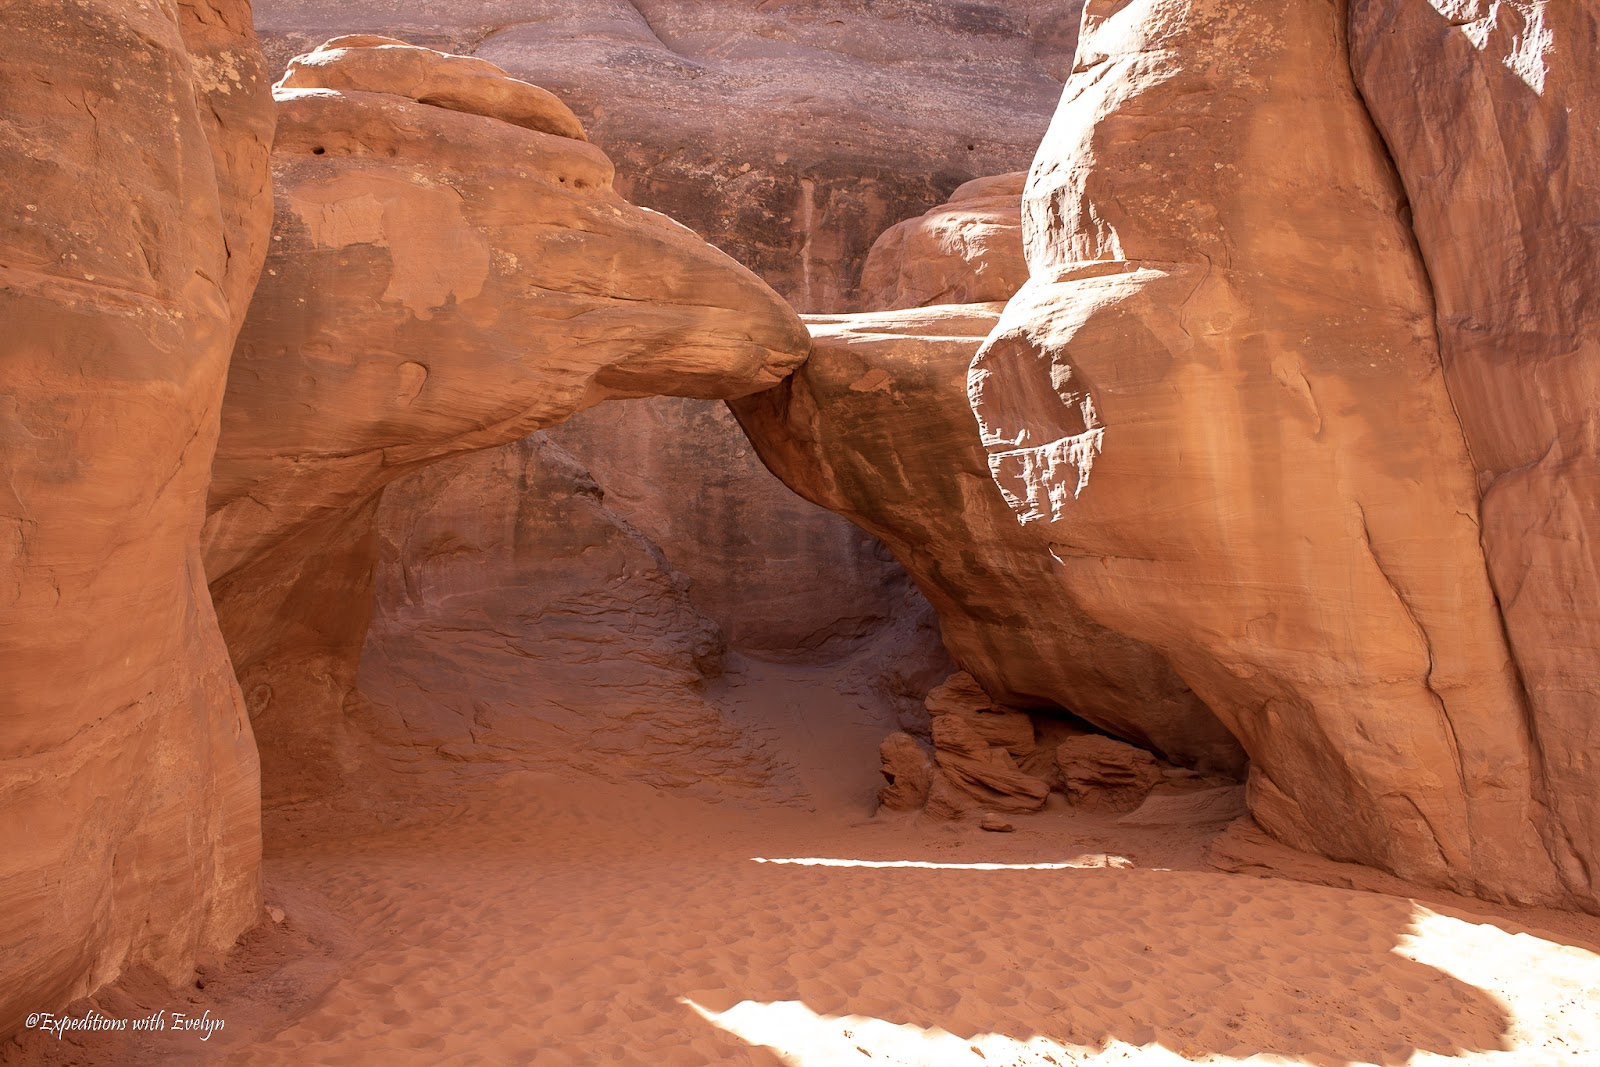 A sandstone arch sits atop a sandy floor in a shaded canyon.